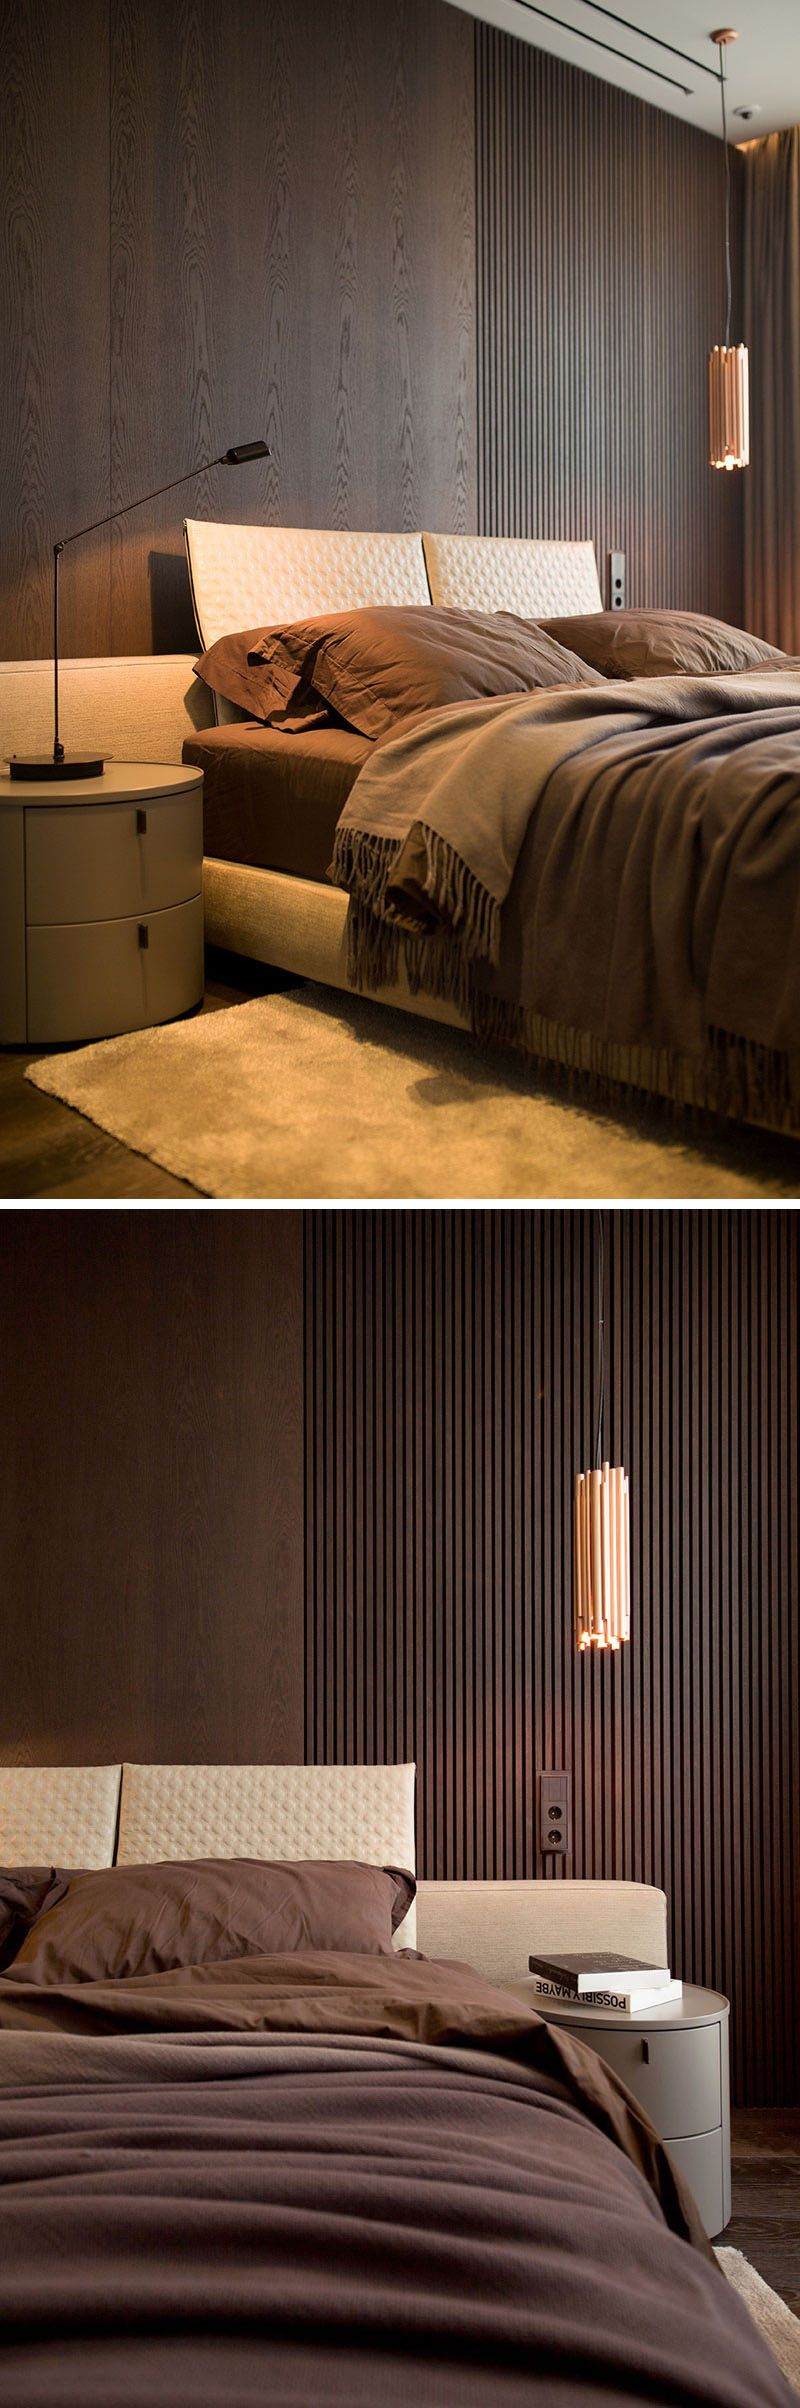 In this modern bedroom dark wood has been used as an accent wall